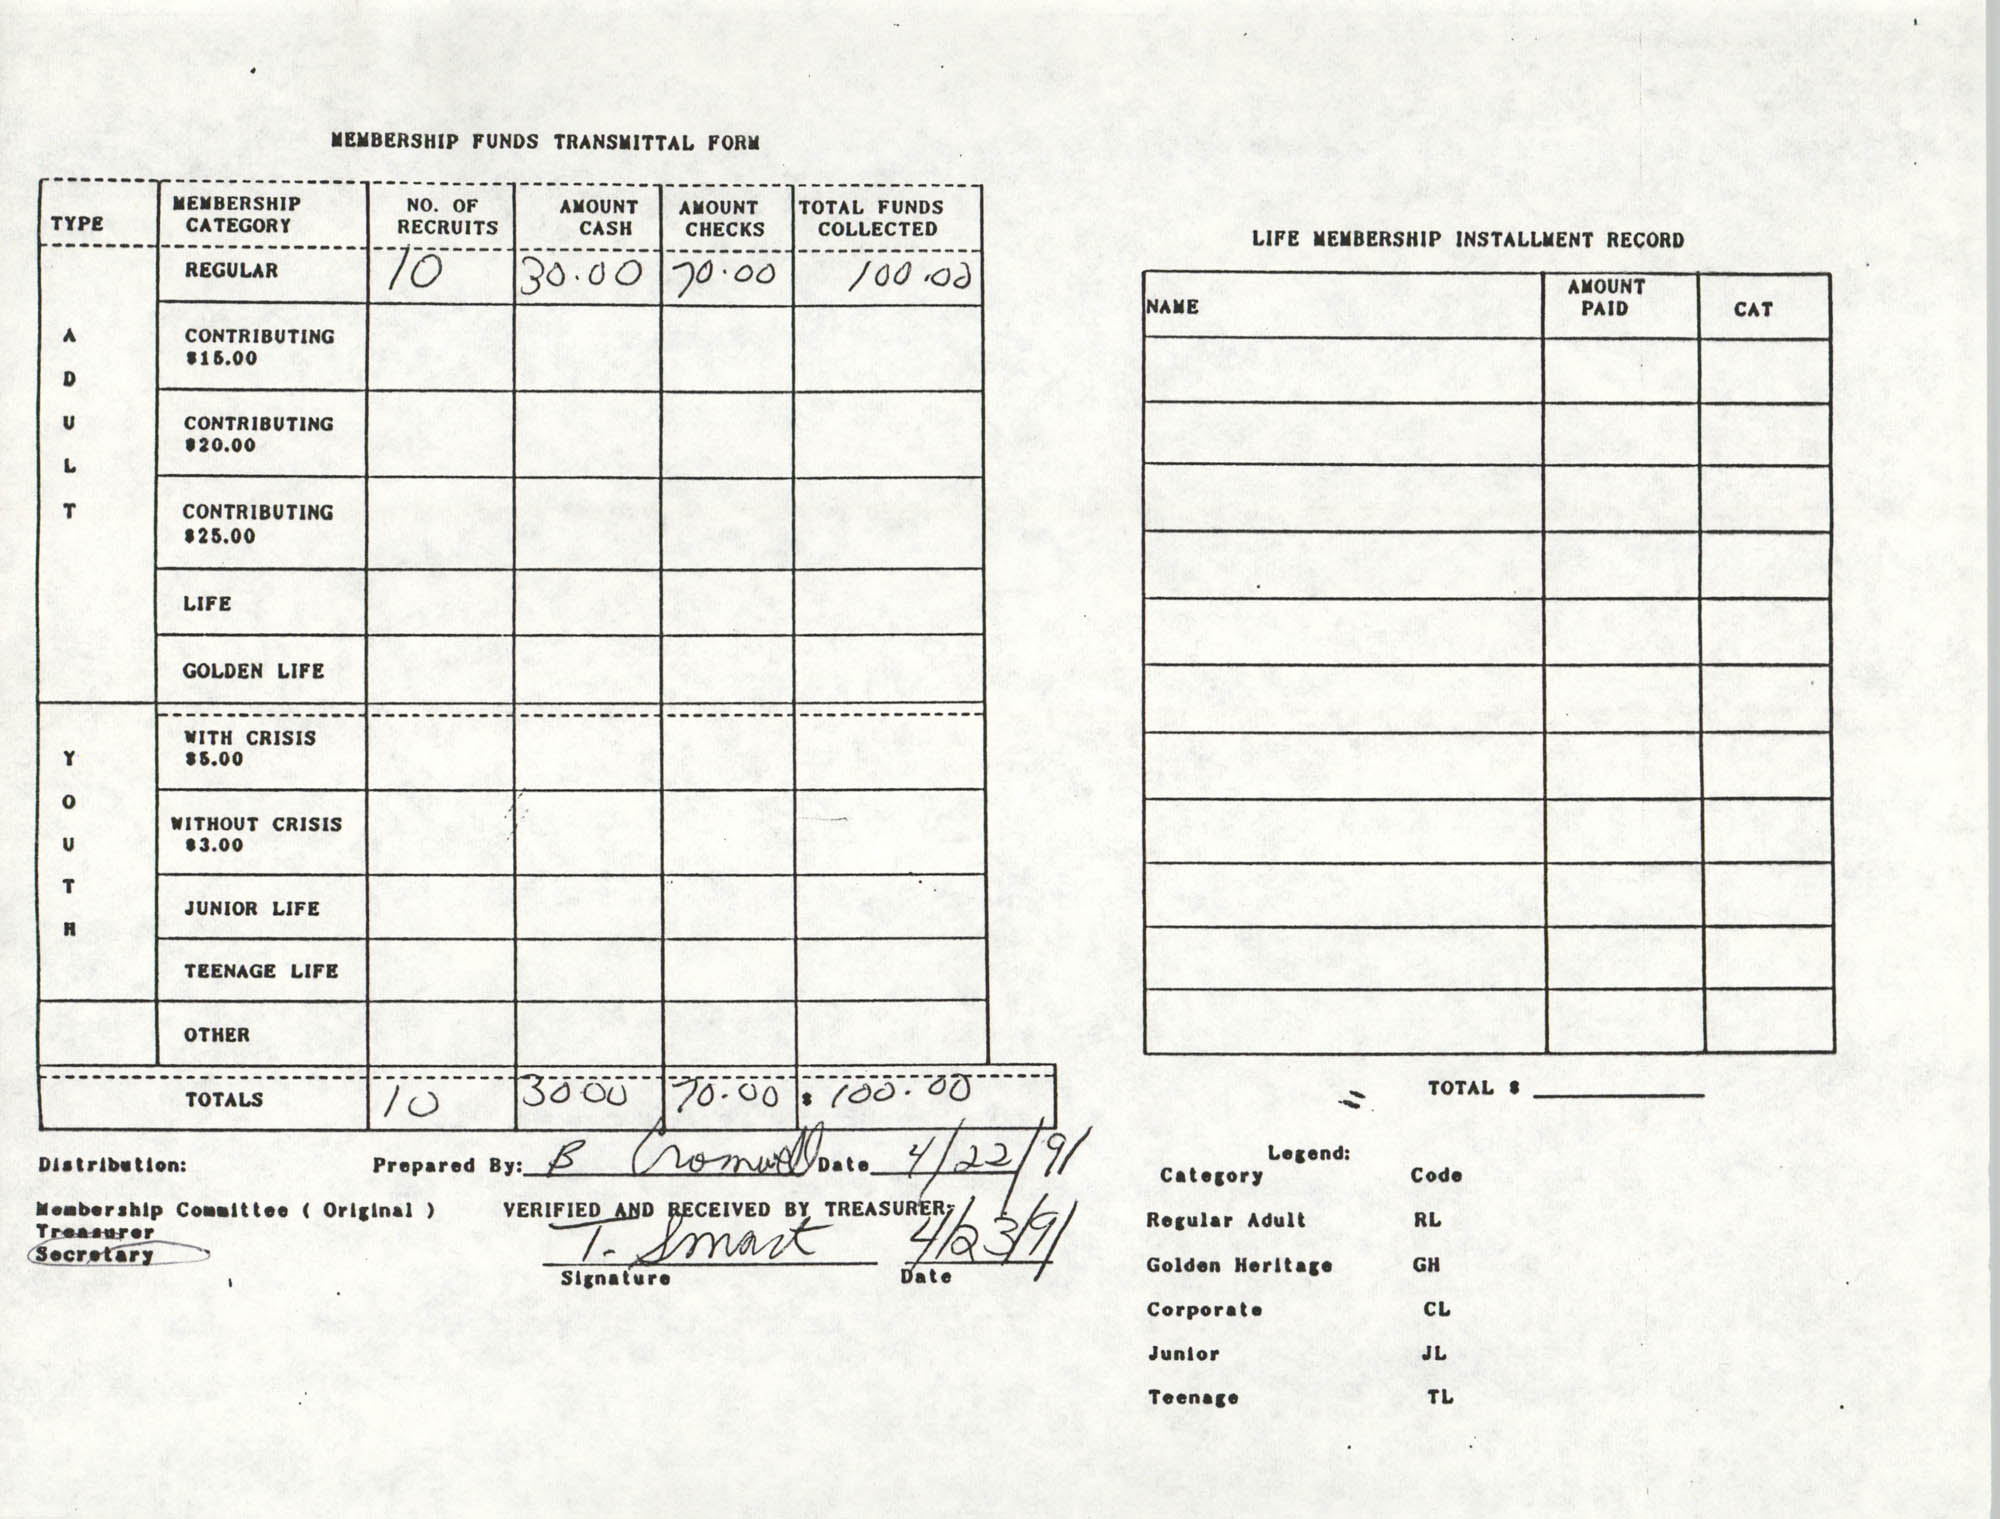 Charleston Branch of the NAACP Funds Transmittal Forms, April 1991, Page 5